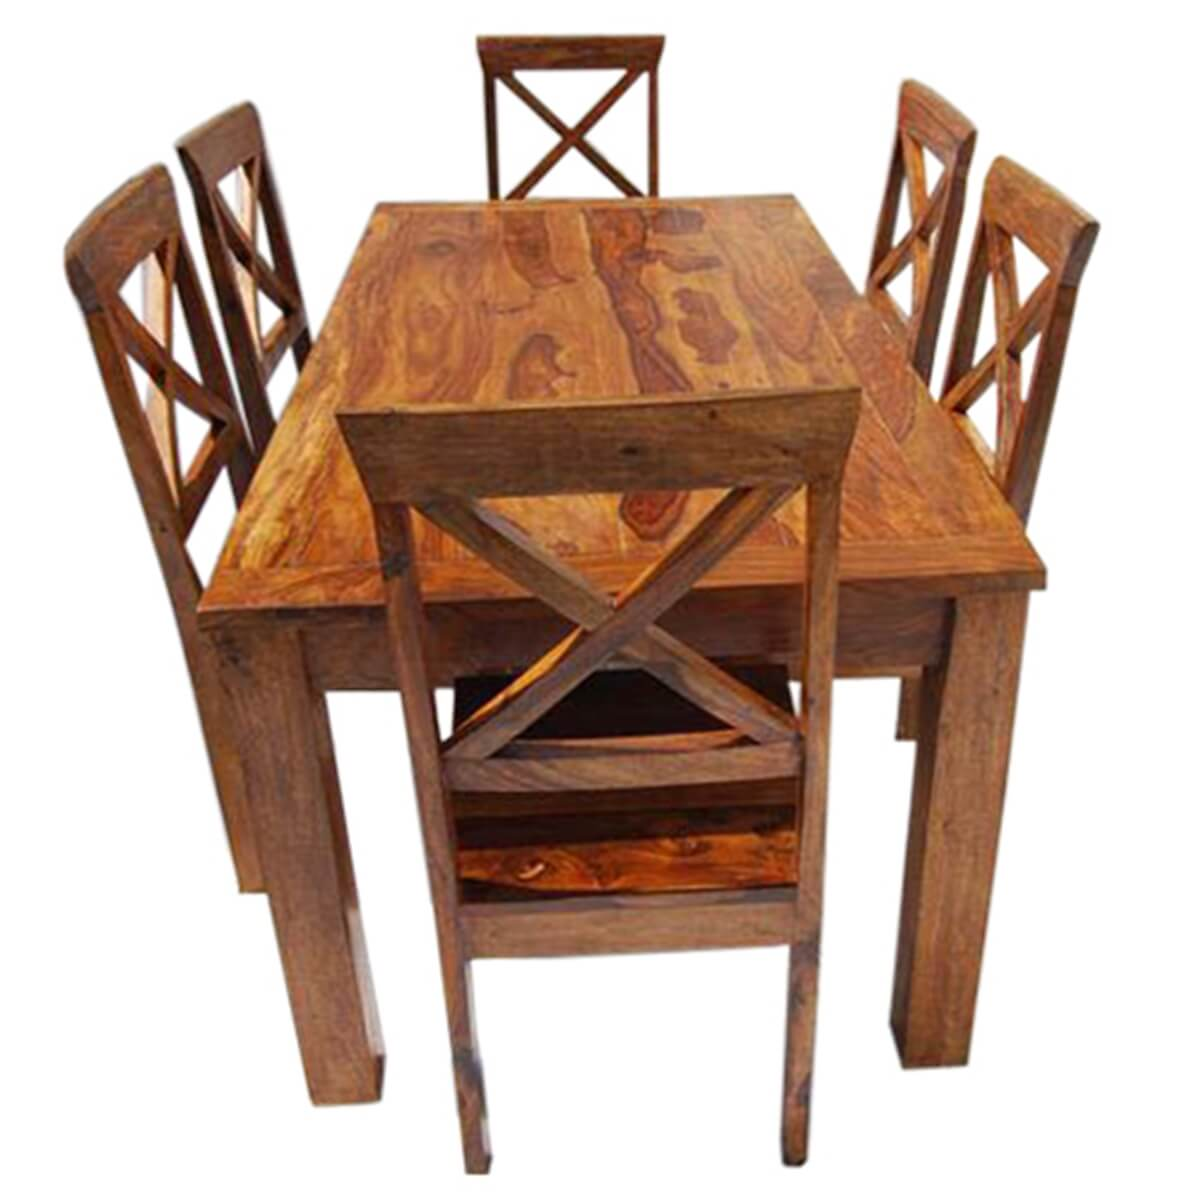 Rustic Solid Wood Oklahoma Dining Table amp Chair Set : 13514 from www.sierralivingconcepts.com size 1200 x 1200 jpeg 380kB